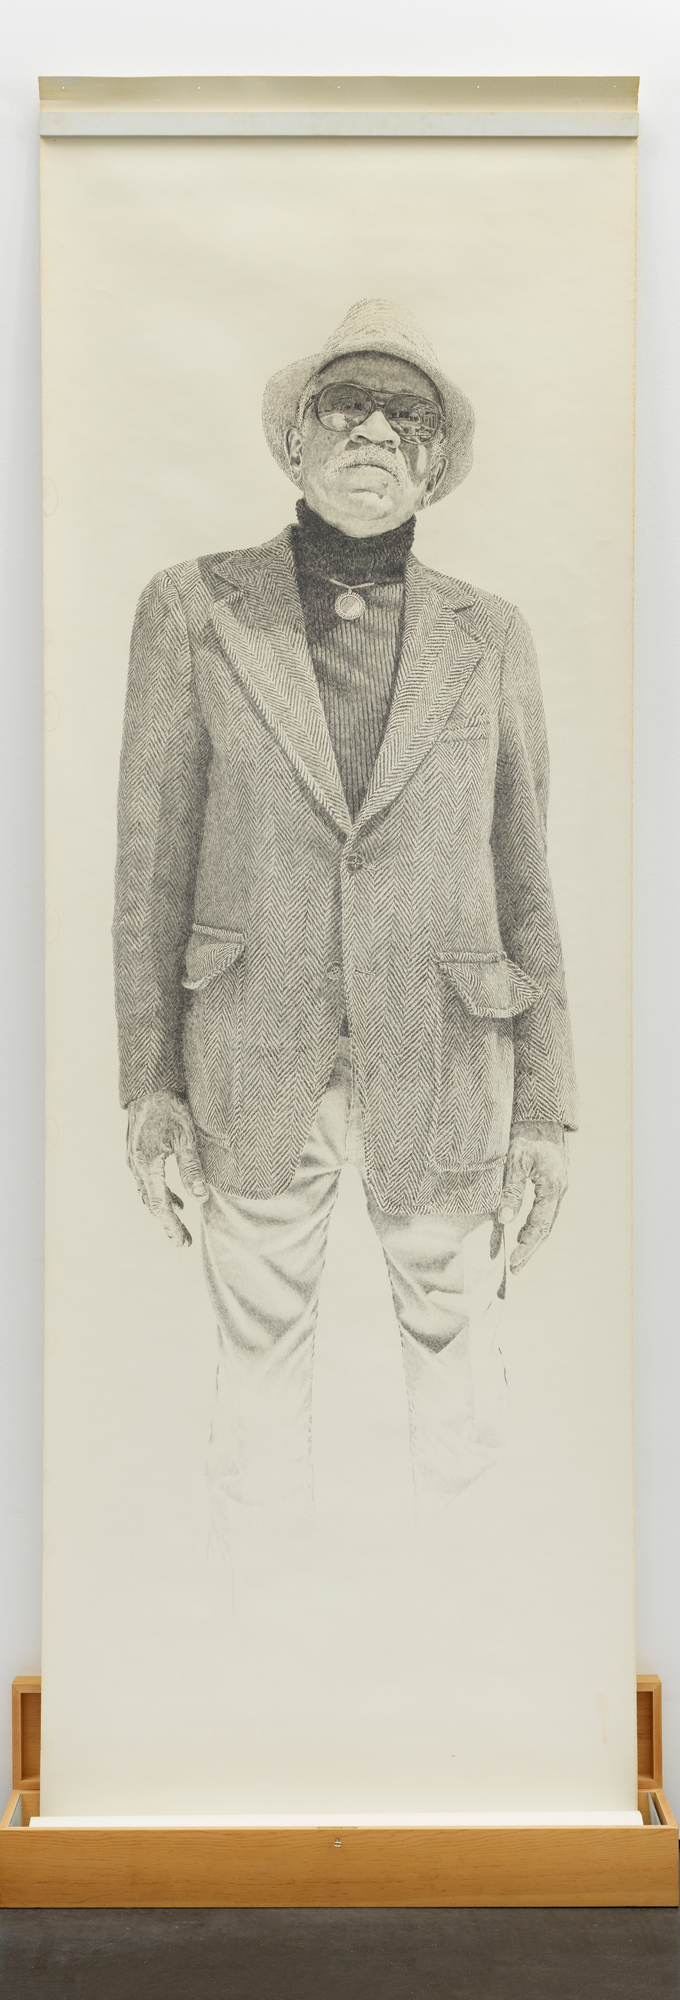 Kent Twitchell. Portrait of Charles White. 1977.